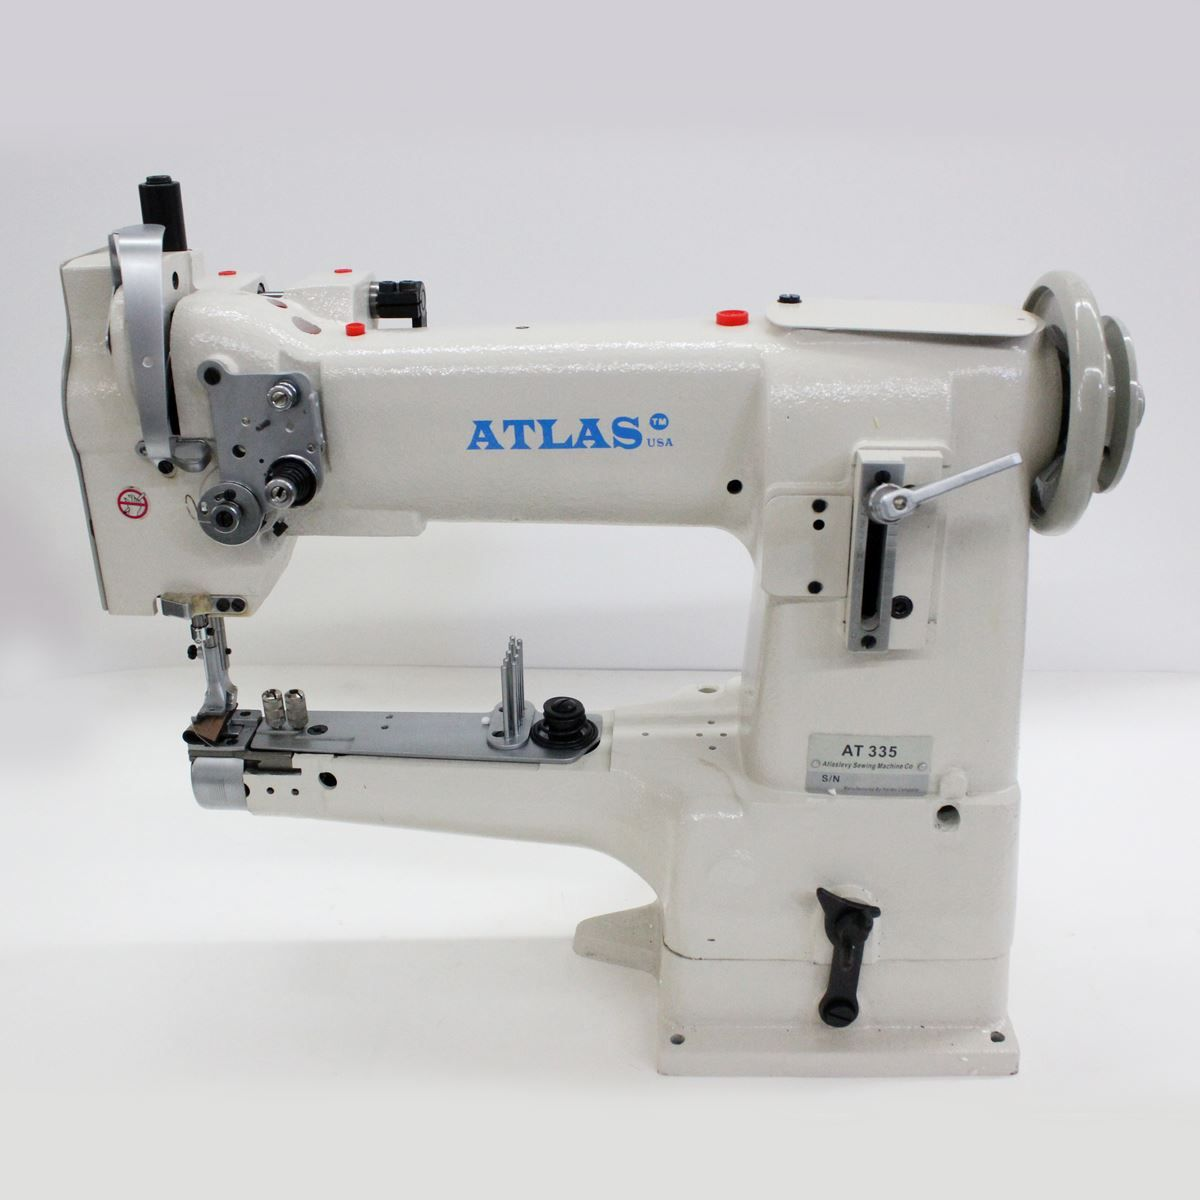 Atlas Usa At335 Sewing Machine Industrial Sewing Machine